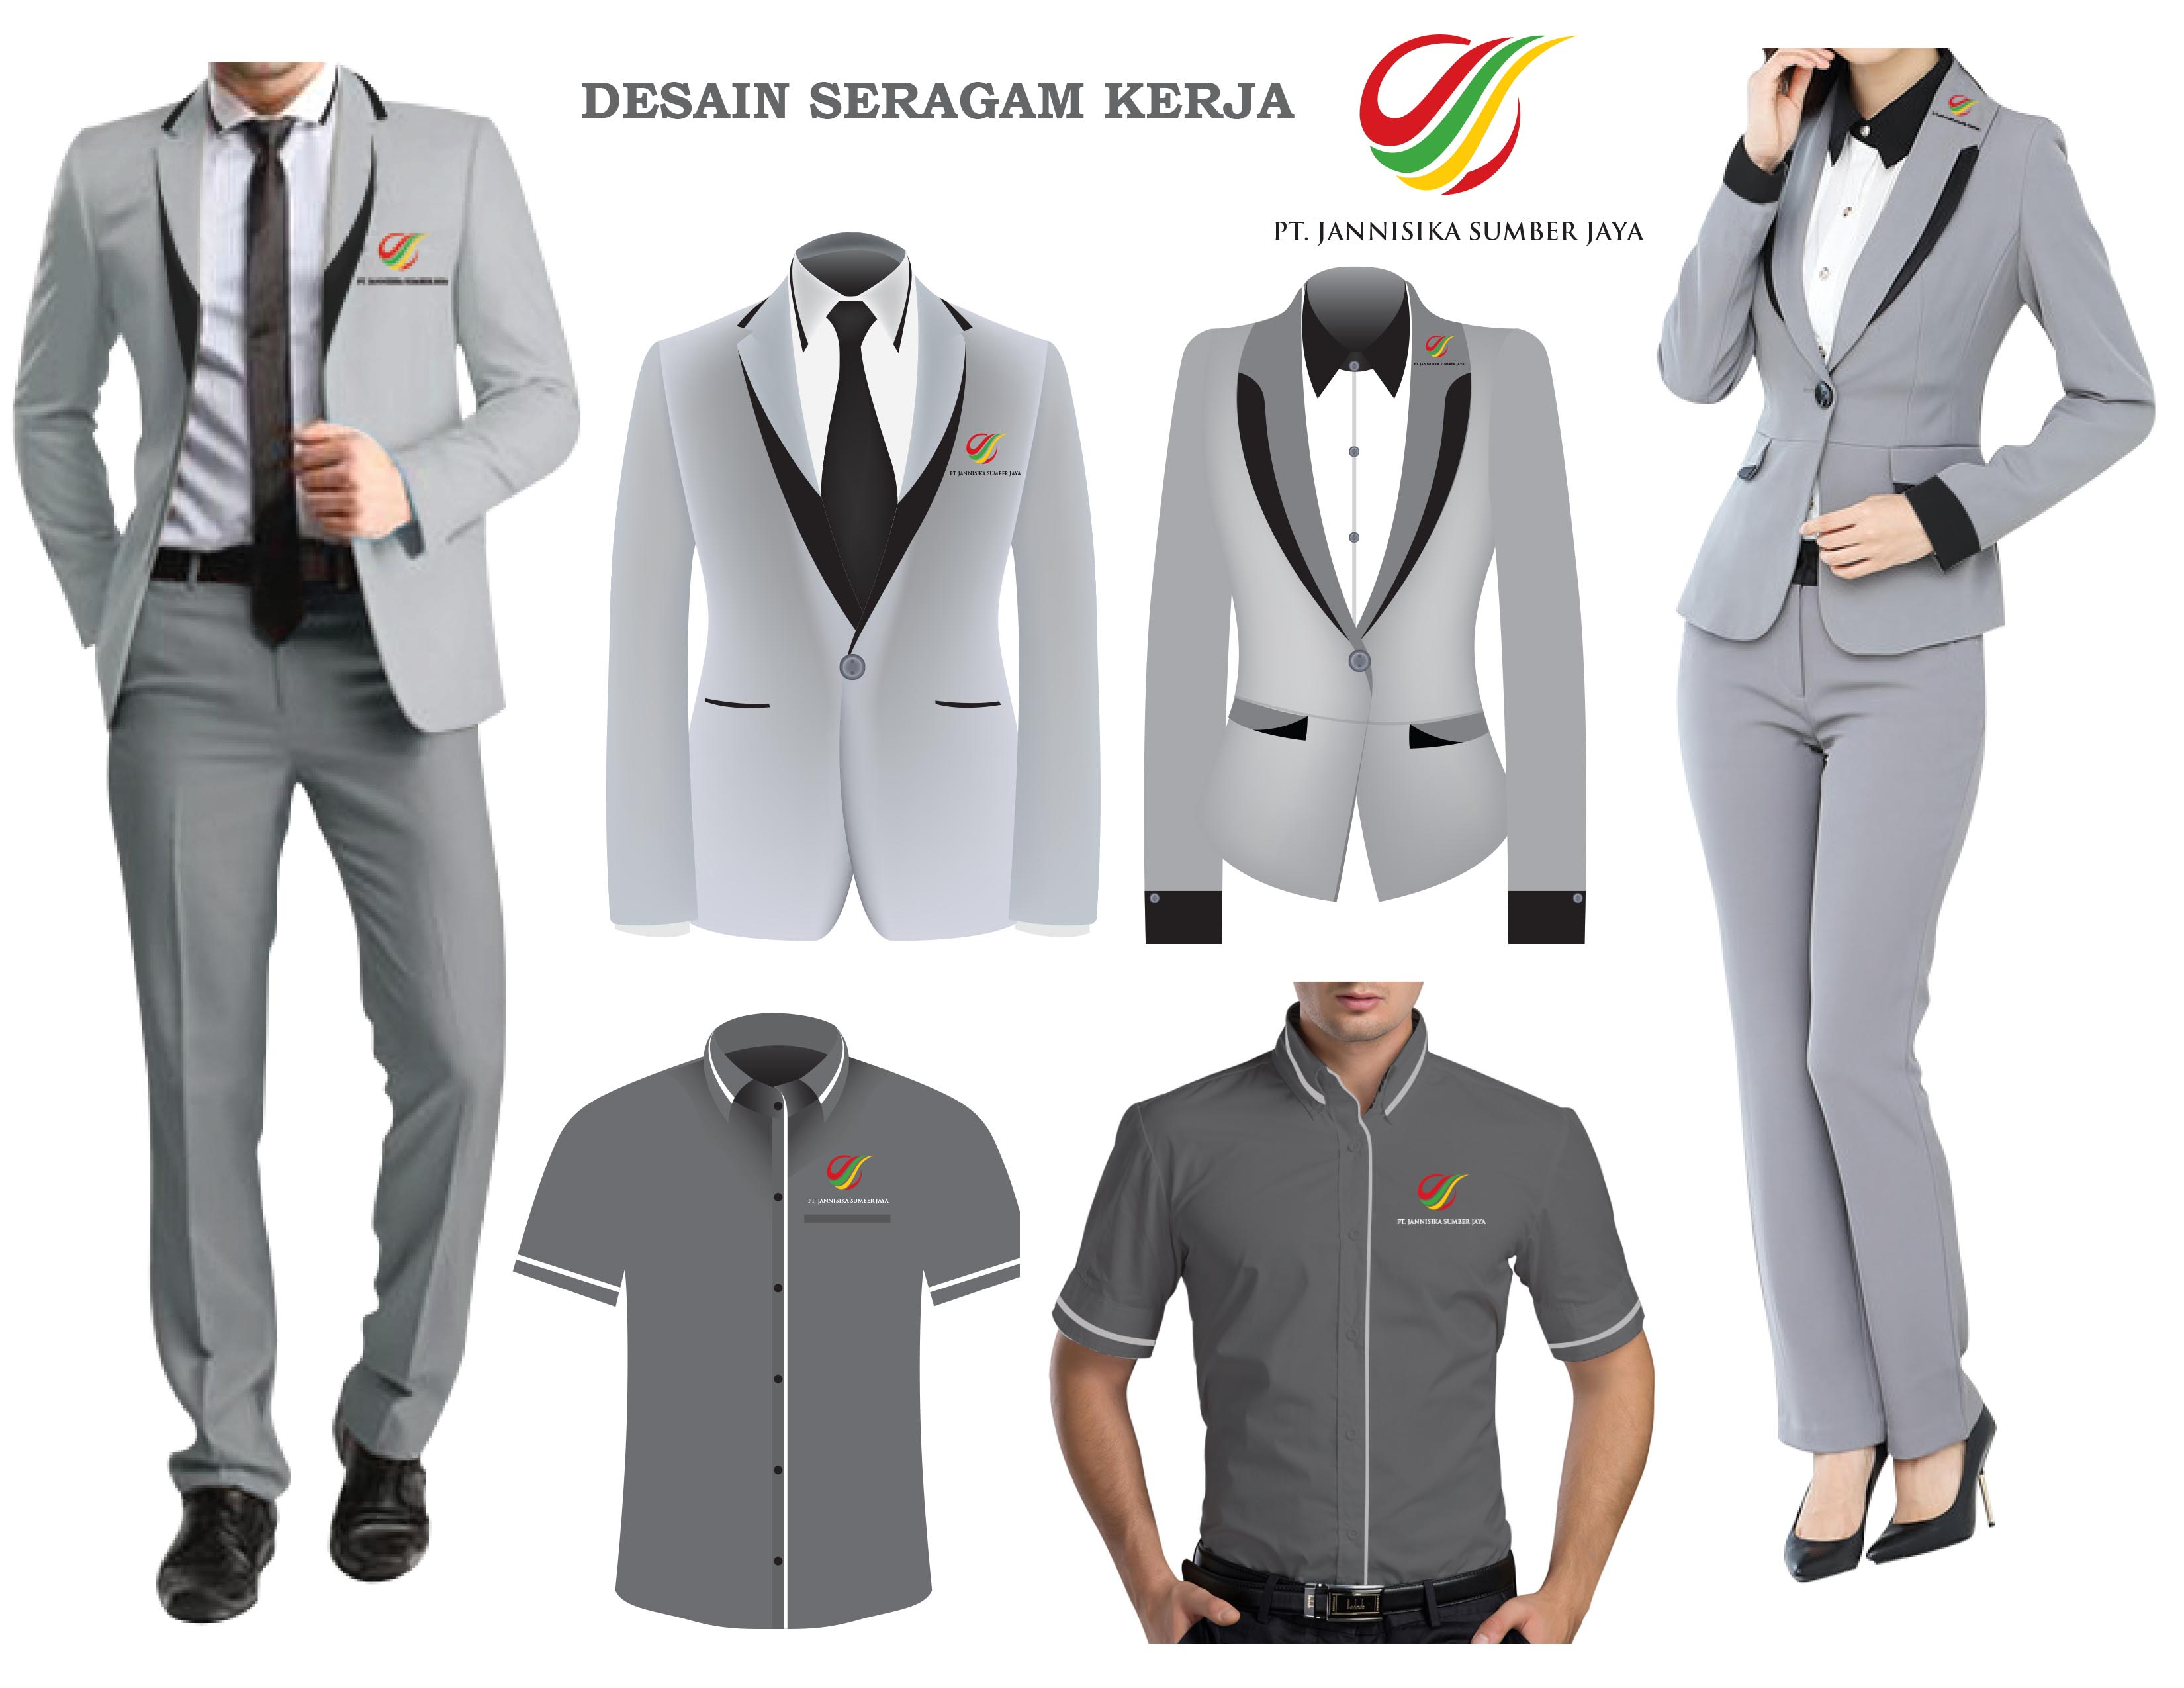 Work Uniform Design Services for PT. Jannisika Sumber Jaya